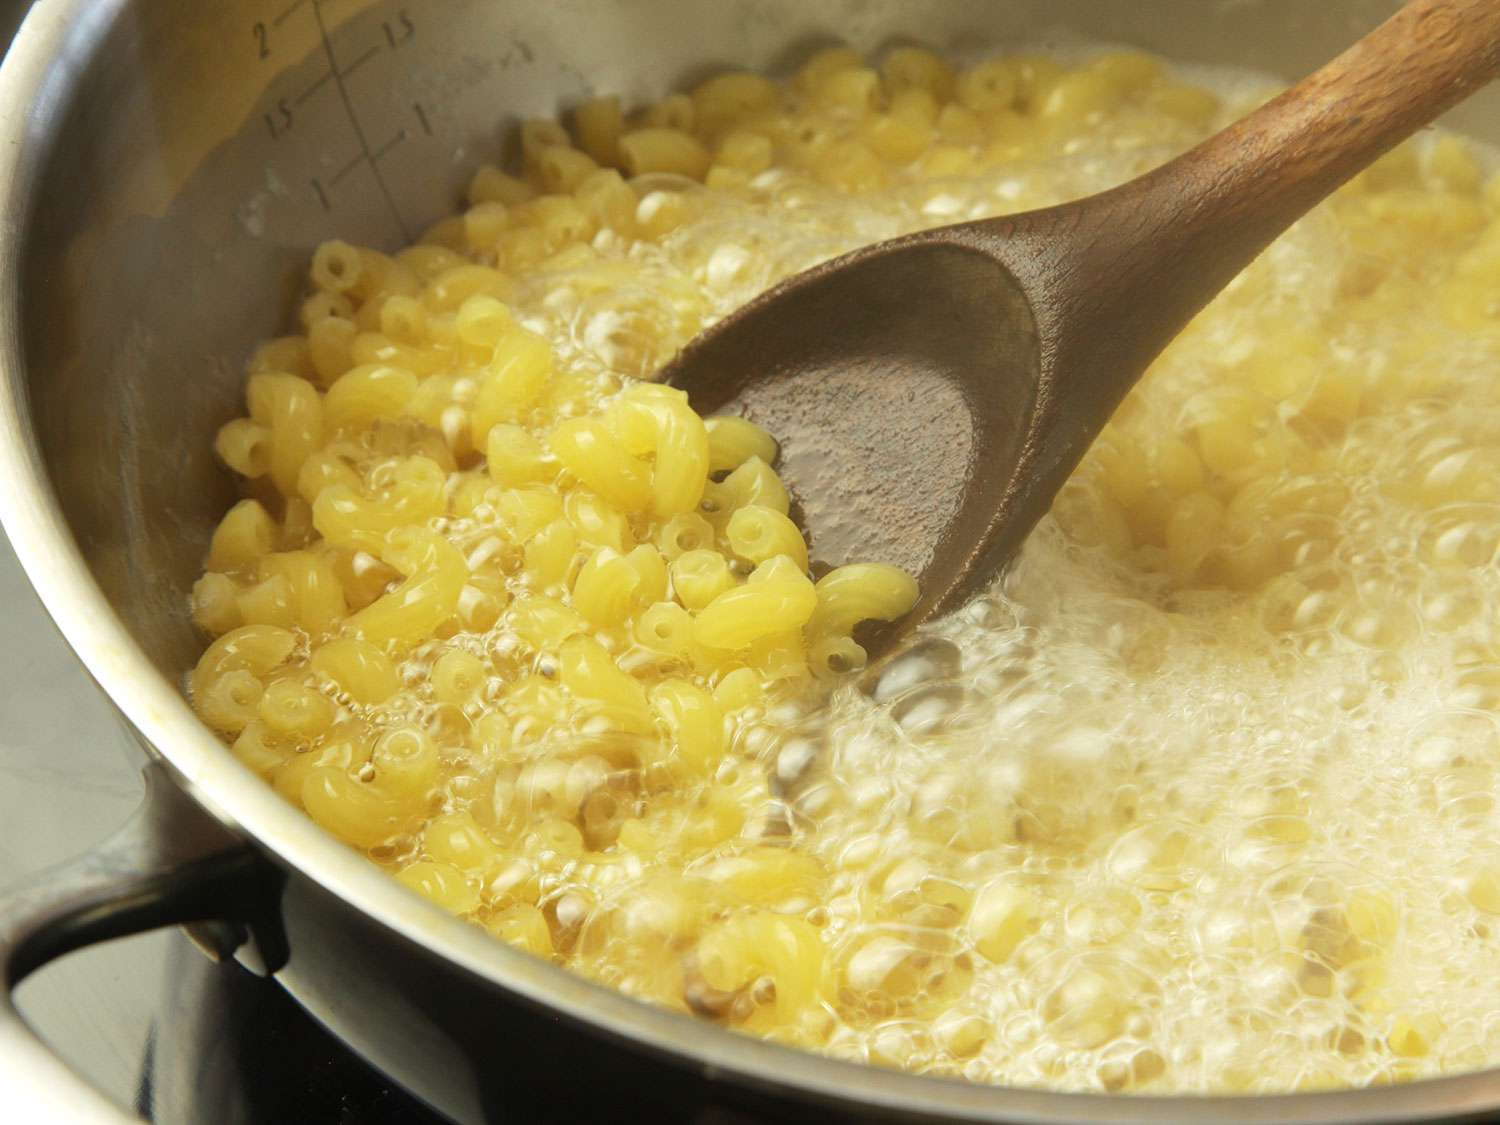 Macaroni in a boiling pot of water, being stirred. There is only just enough water to cover the pasta, which helps concentrate starch.